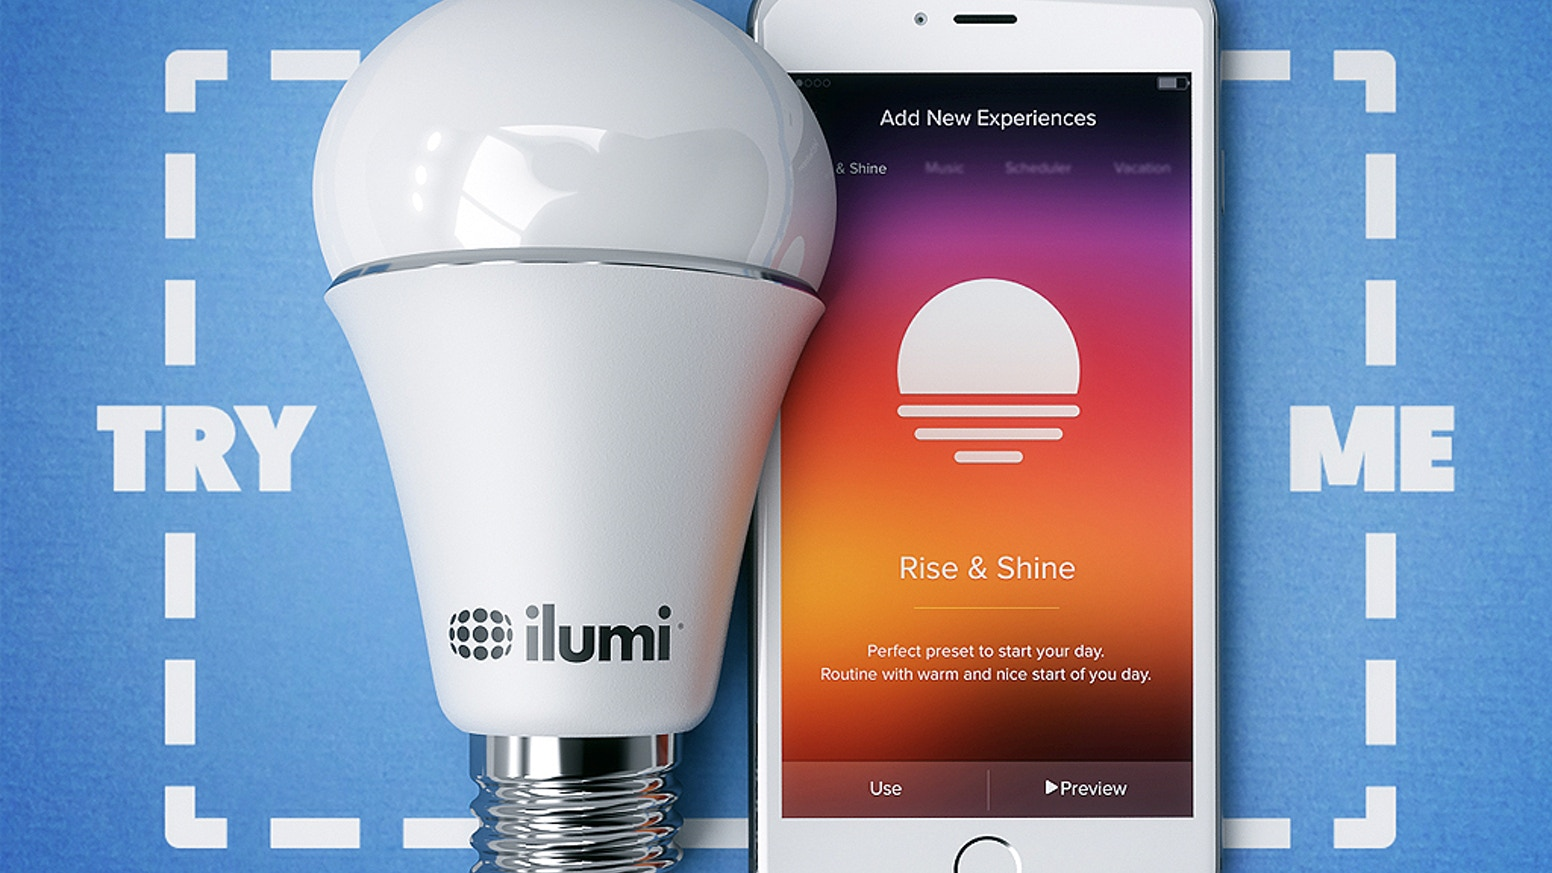 The Simplest, Brightest, & Most Intelligent Smart Bulb in the Universe!